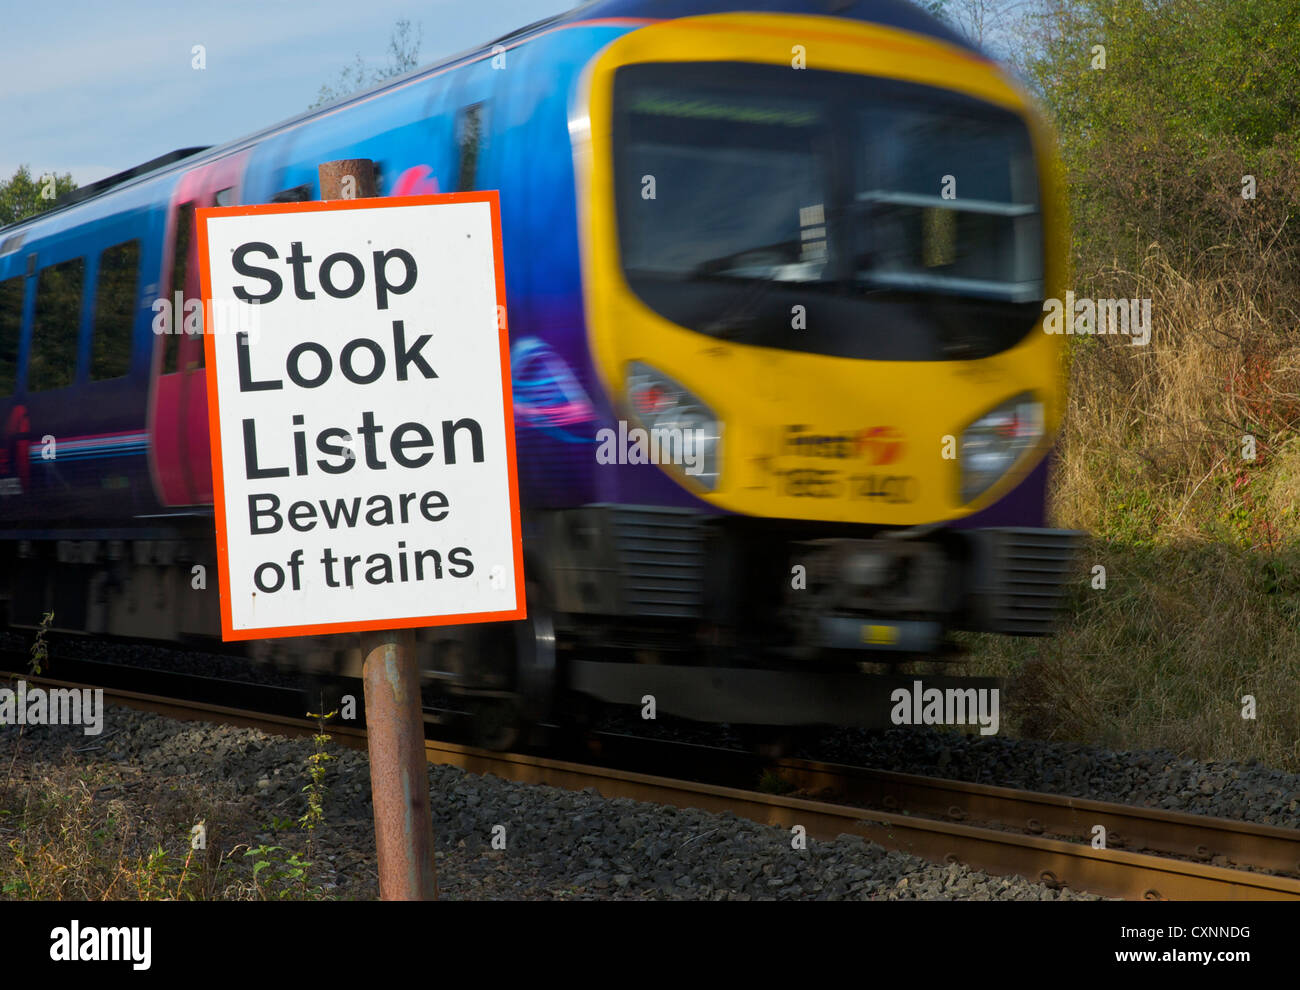 Speeding train and sign, by pedestrian crossing over railway line, warning people about trains Stock Photo